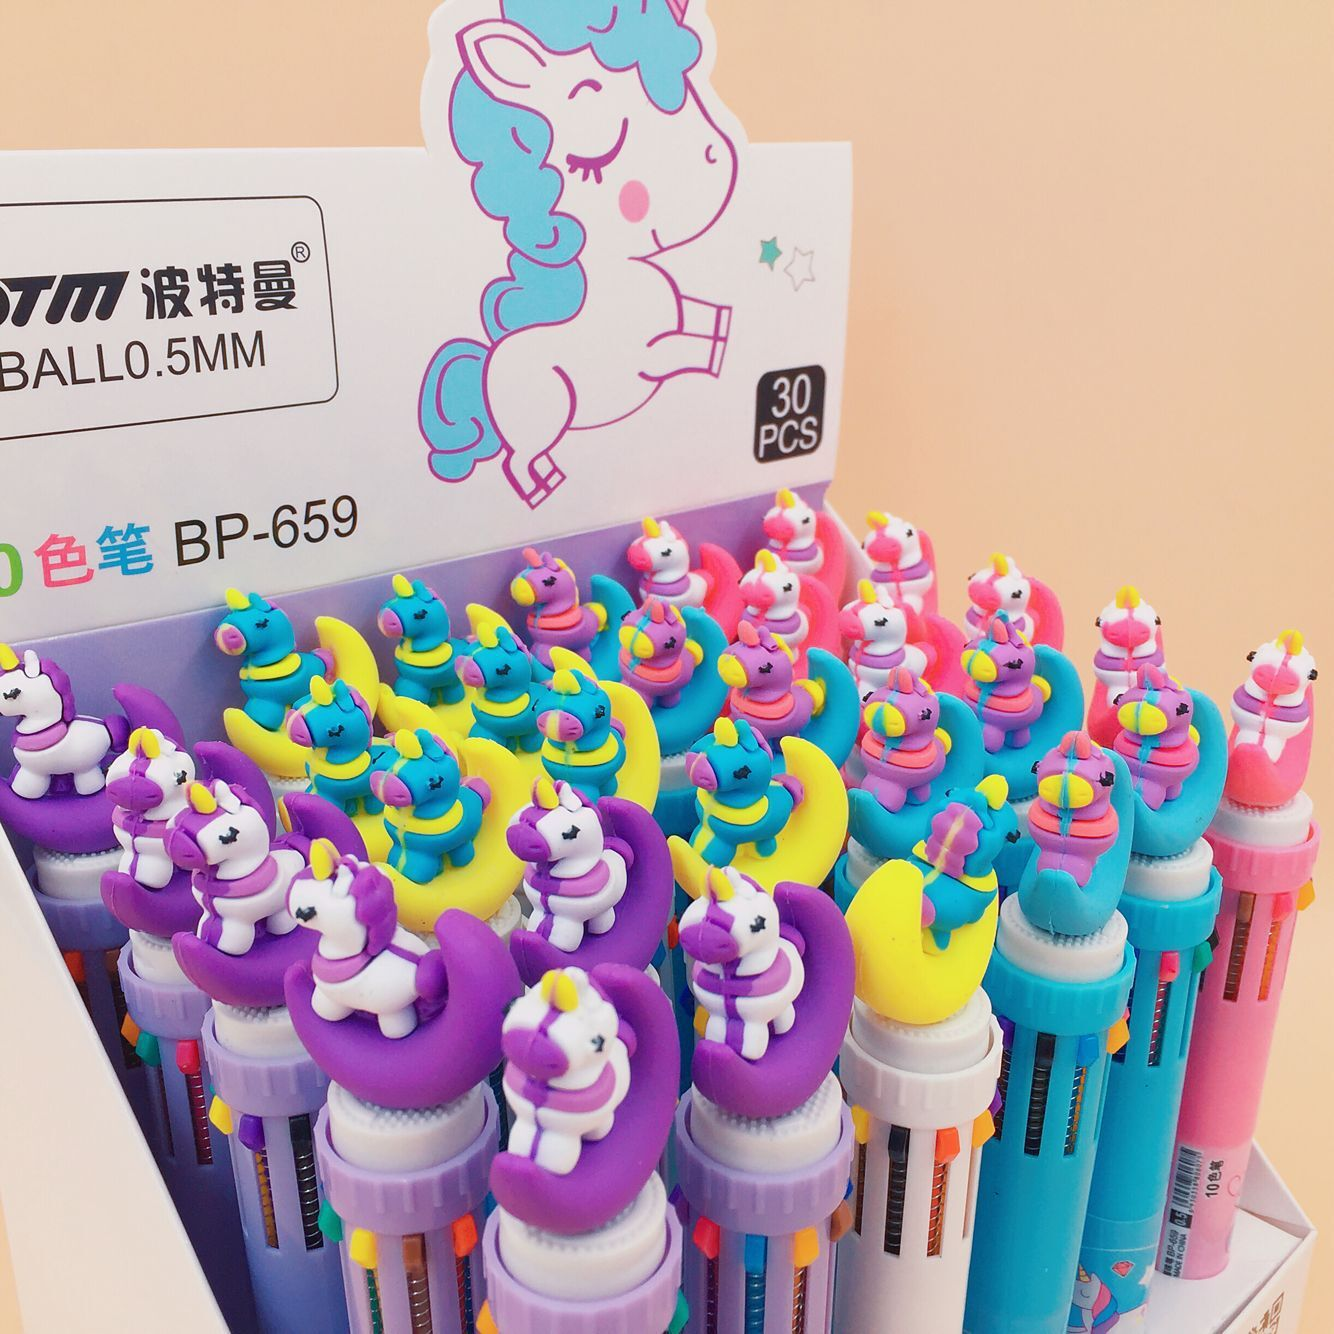 30pcs/1lot Kawaii Ballpen 6color Cartoon Unicorn Animals Ballpoint Pens School Stationery Writing Supplies Office Supplies 0.5mm